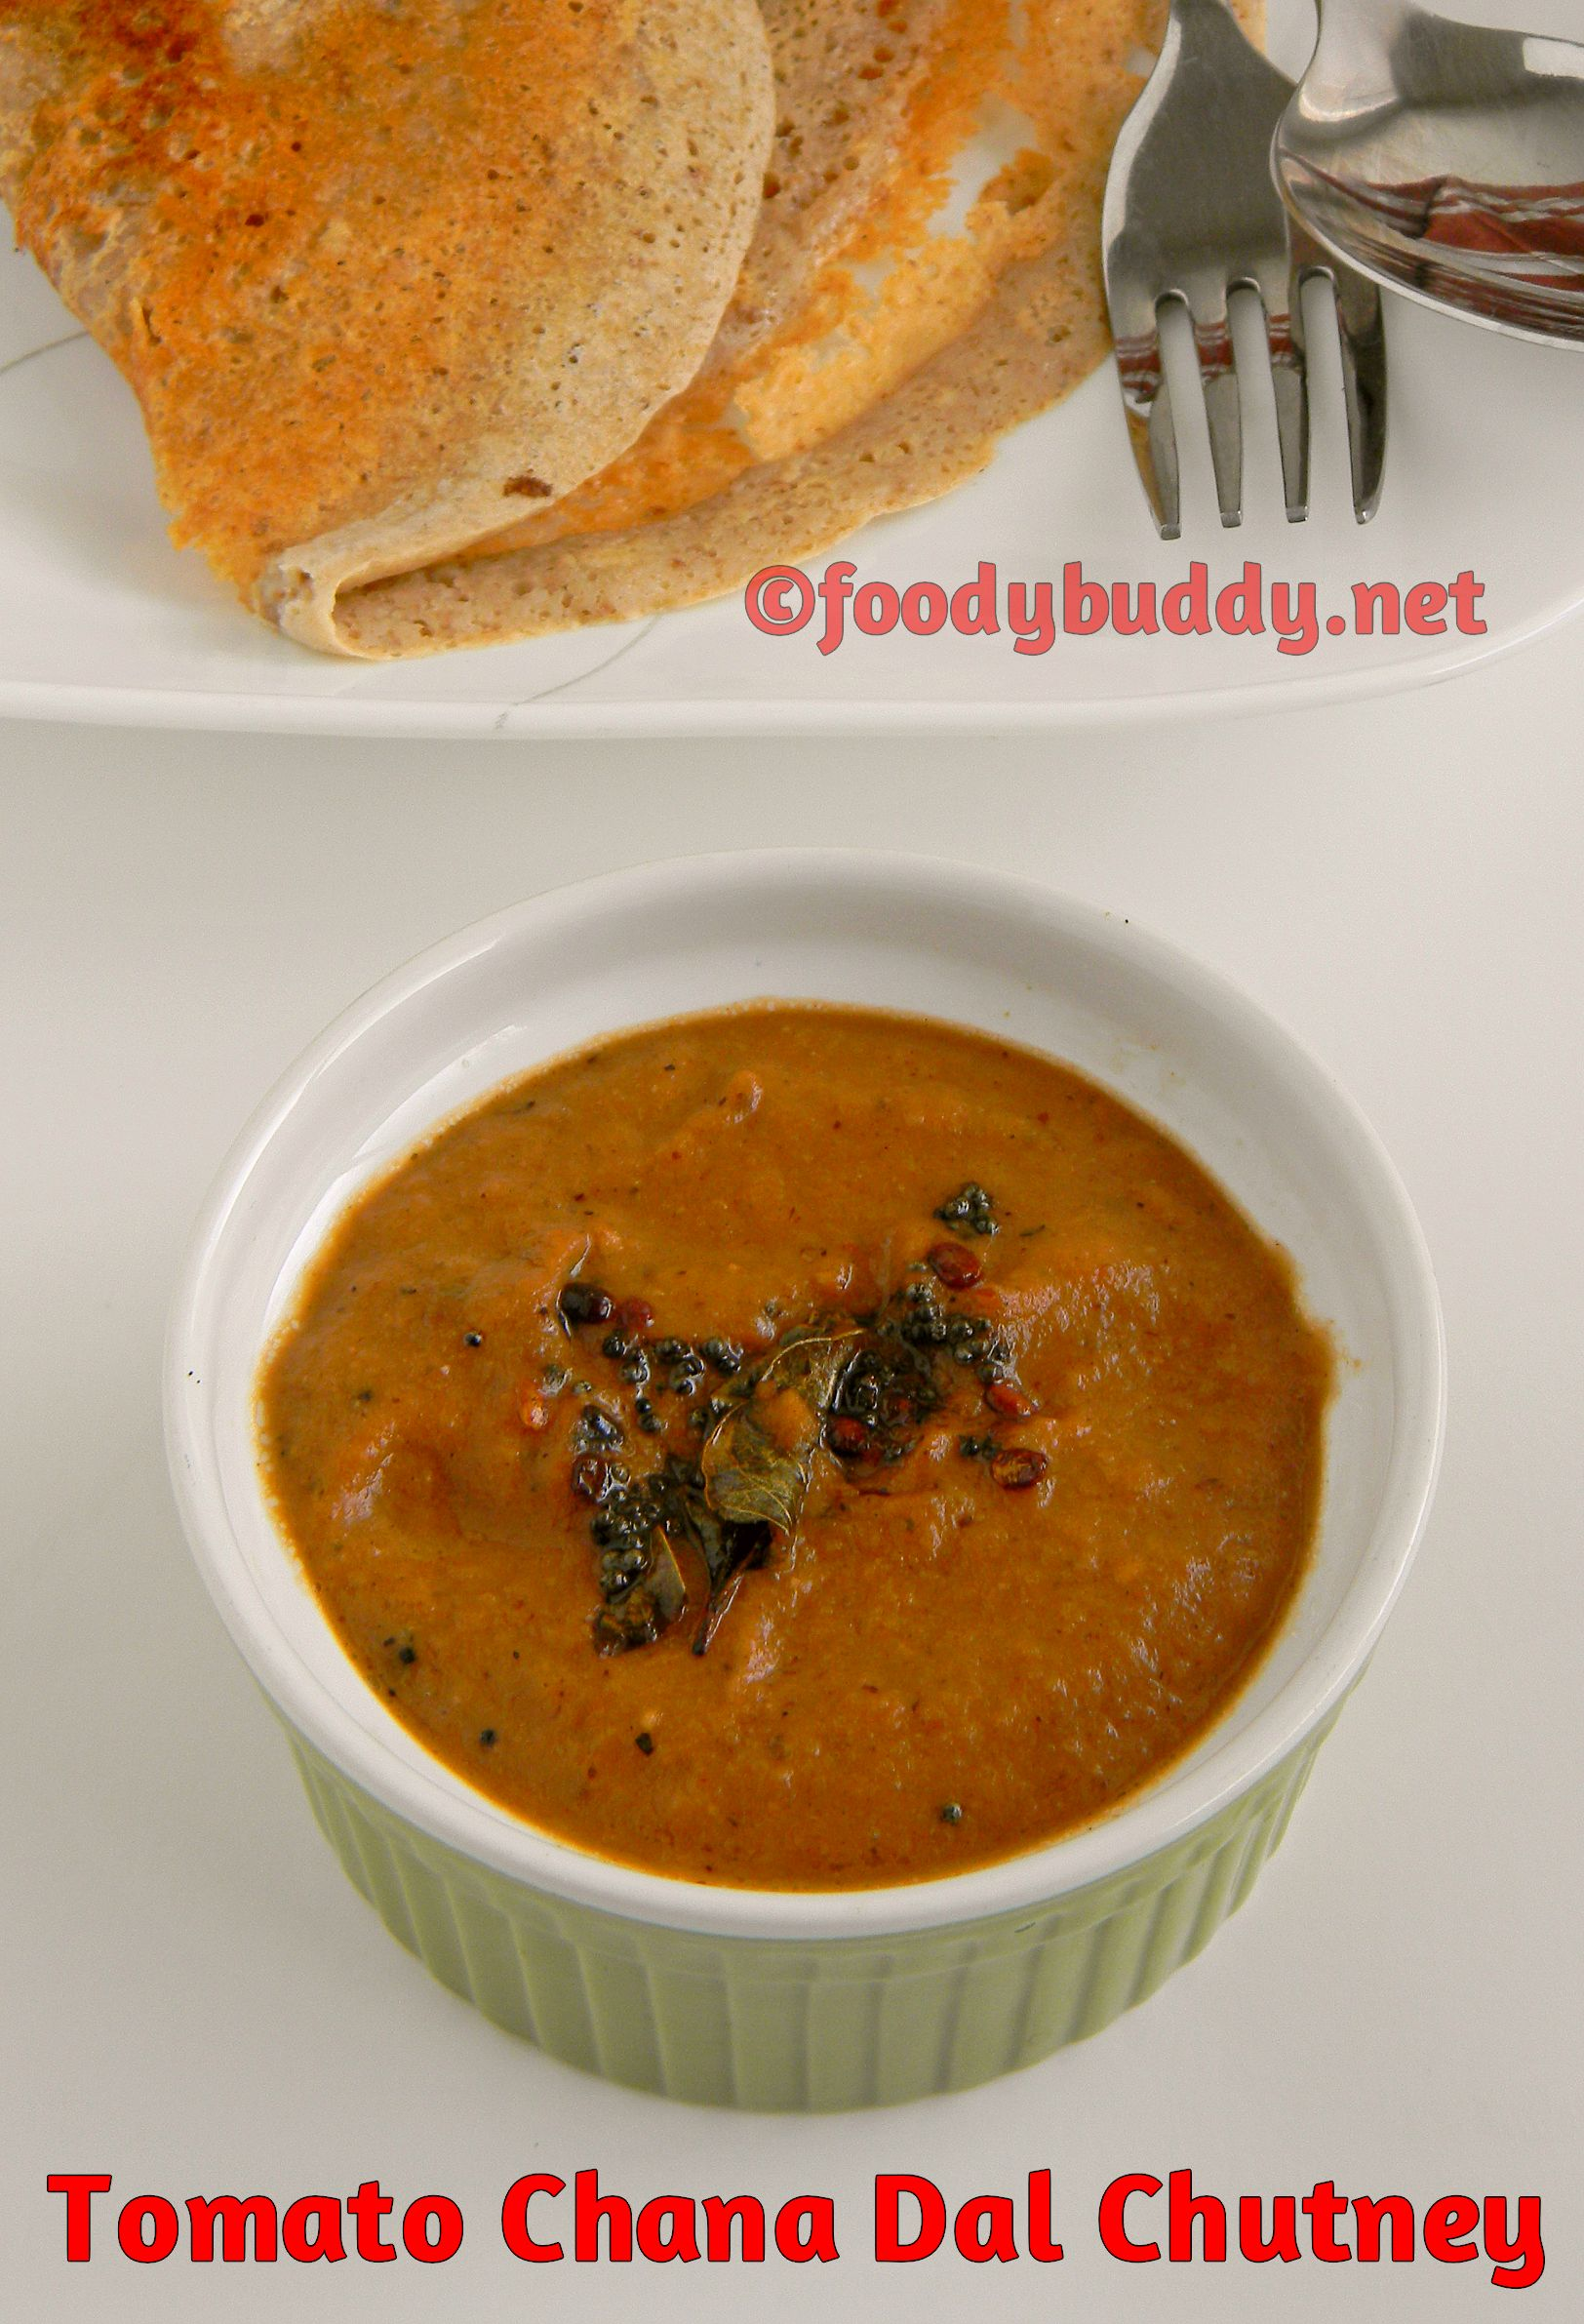 ... dal chutney without coconut i wanted to make onion tomato chutney to